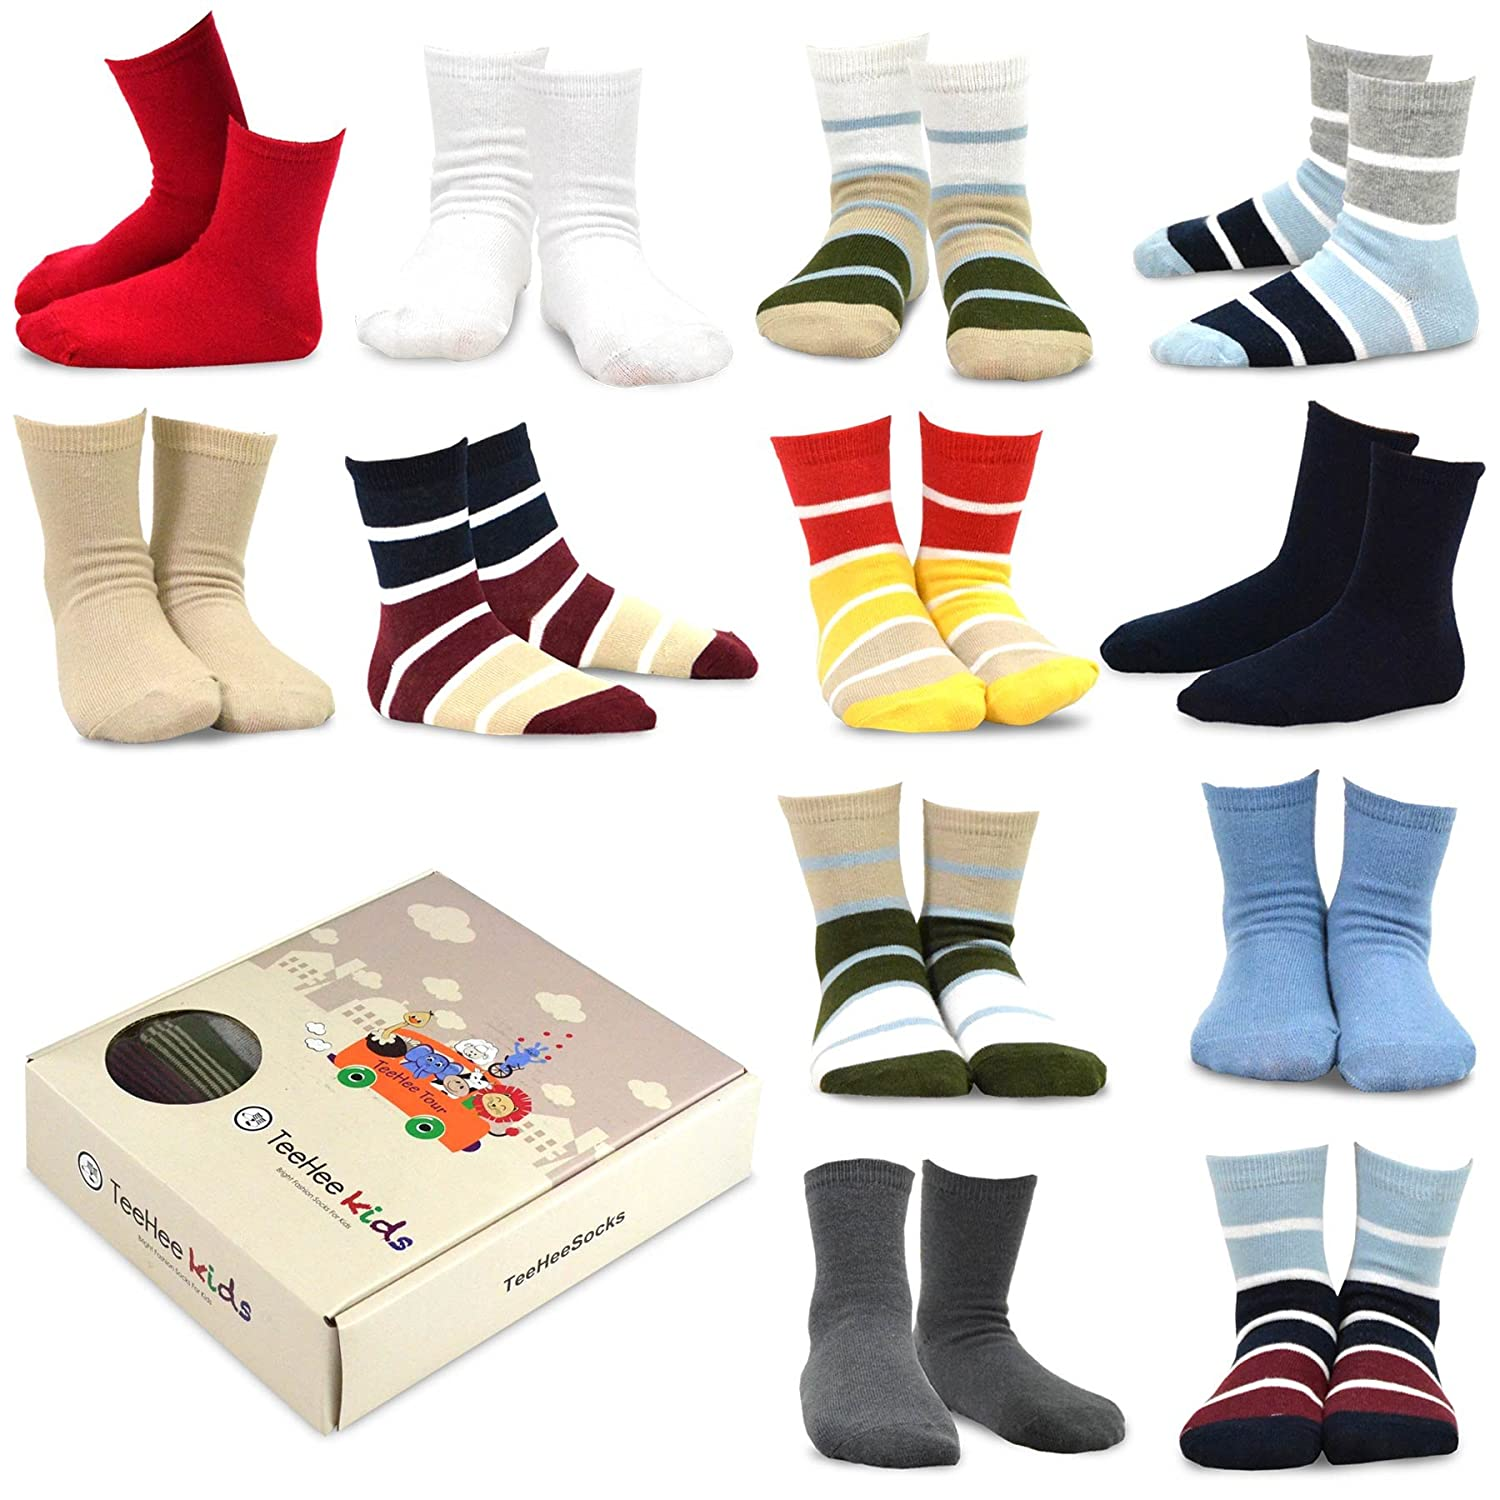 TeeHee (Naartjie) Kids Boys Cotton Basic Crew Socks 12 Pair Pack